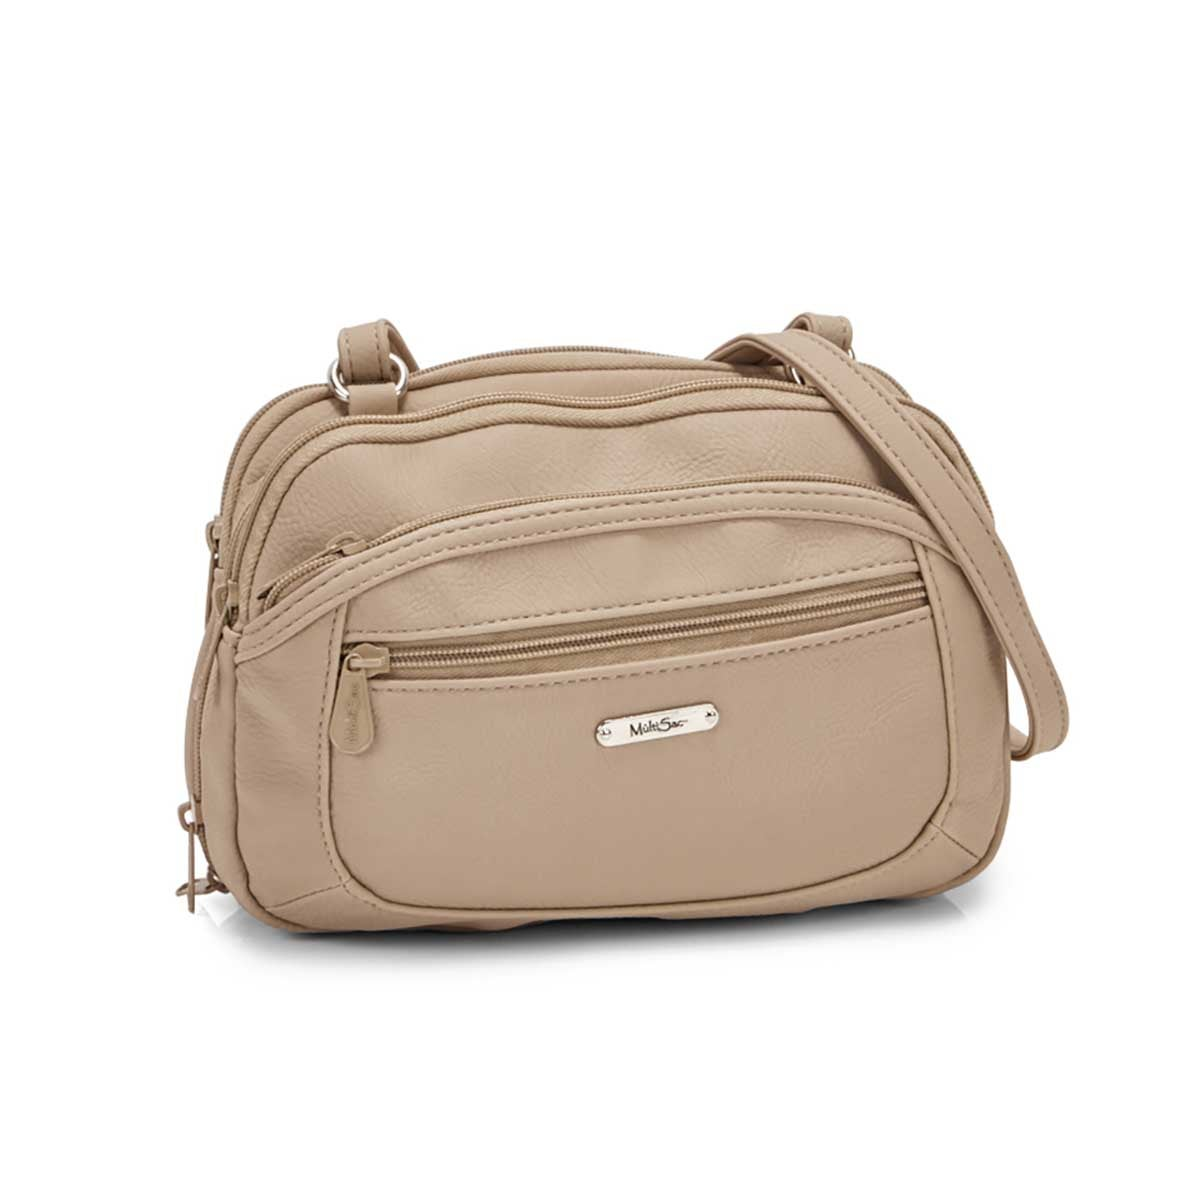 Women's TERABYTE taupe cross body bag